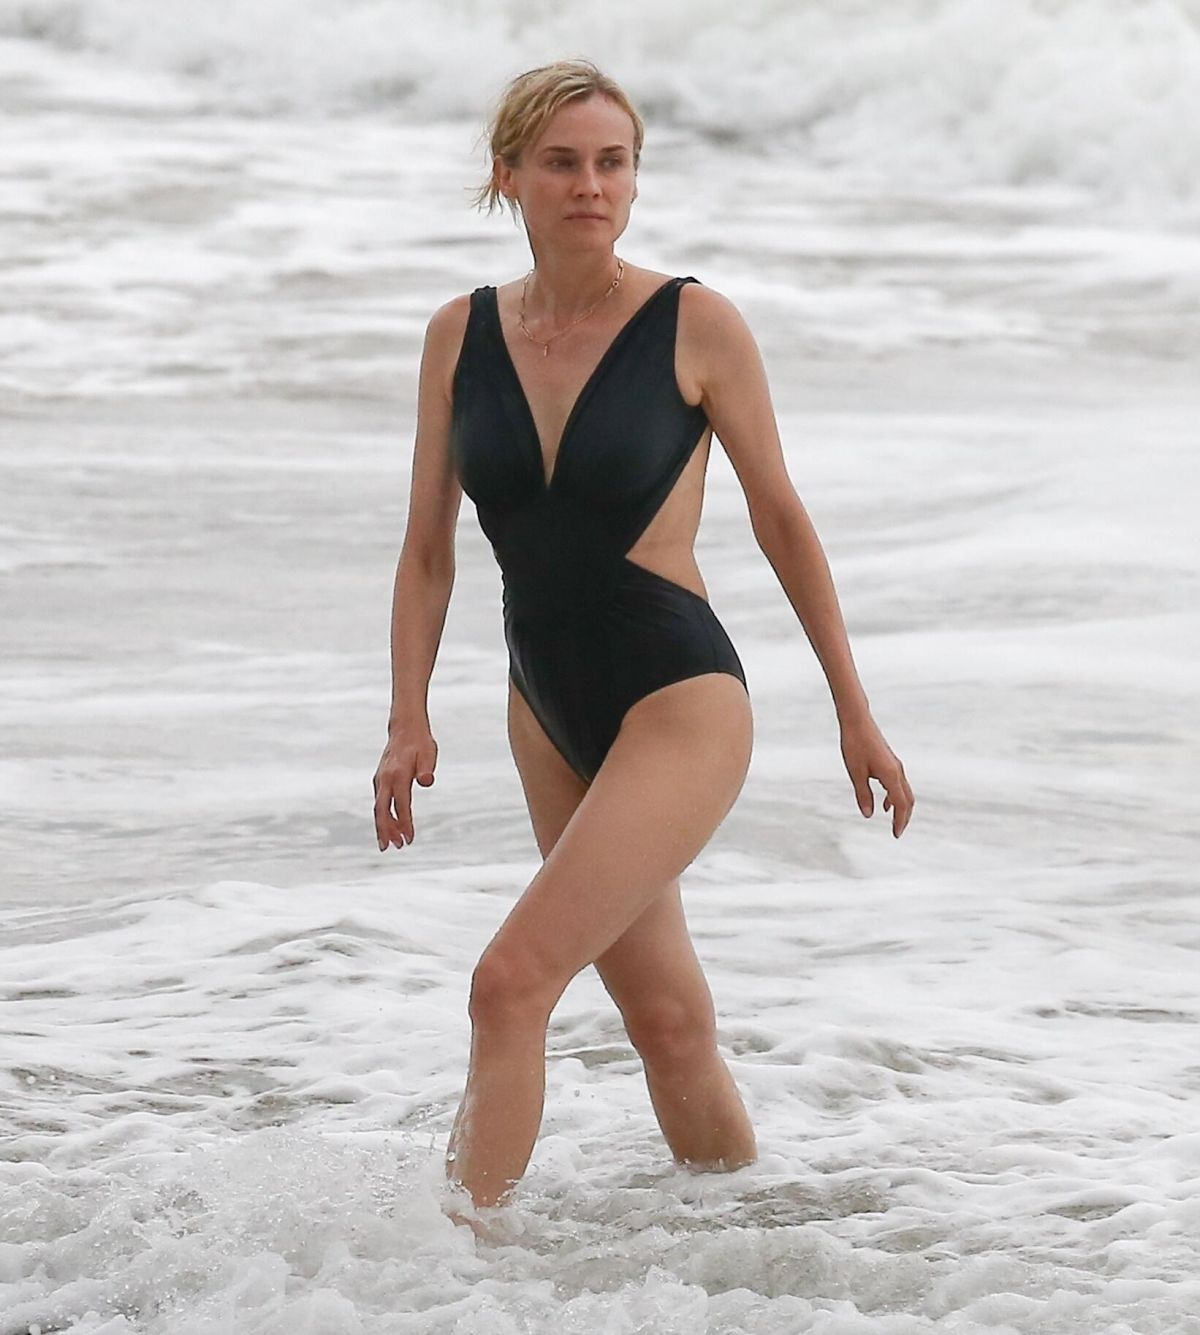 Diane Kruger On the beach in Costa Rica